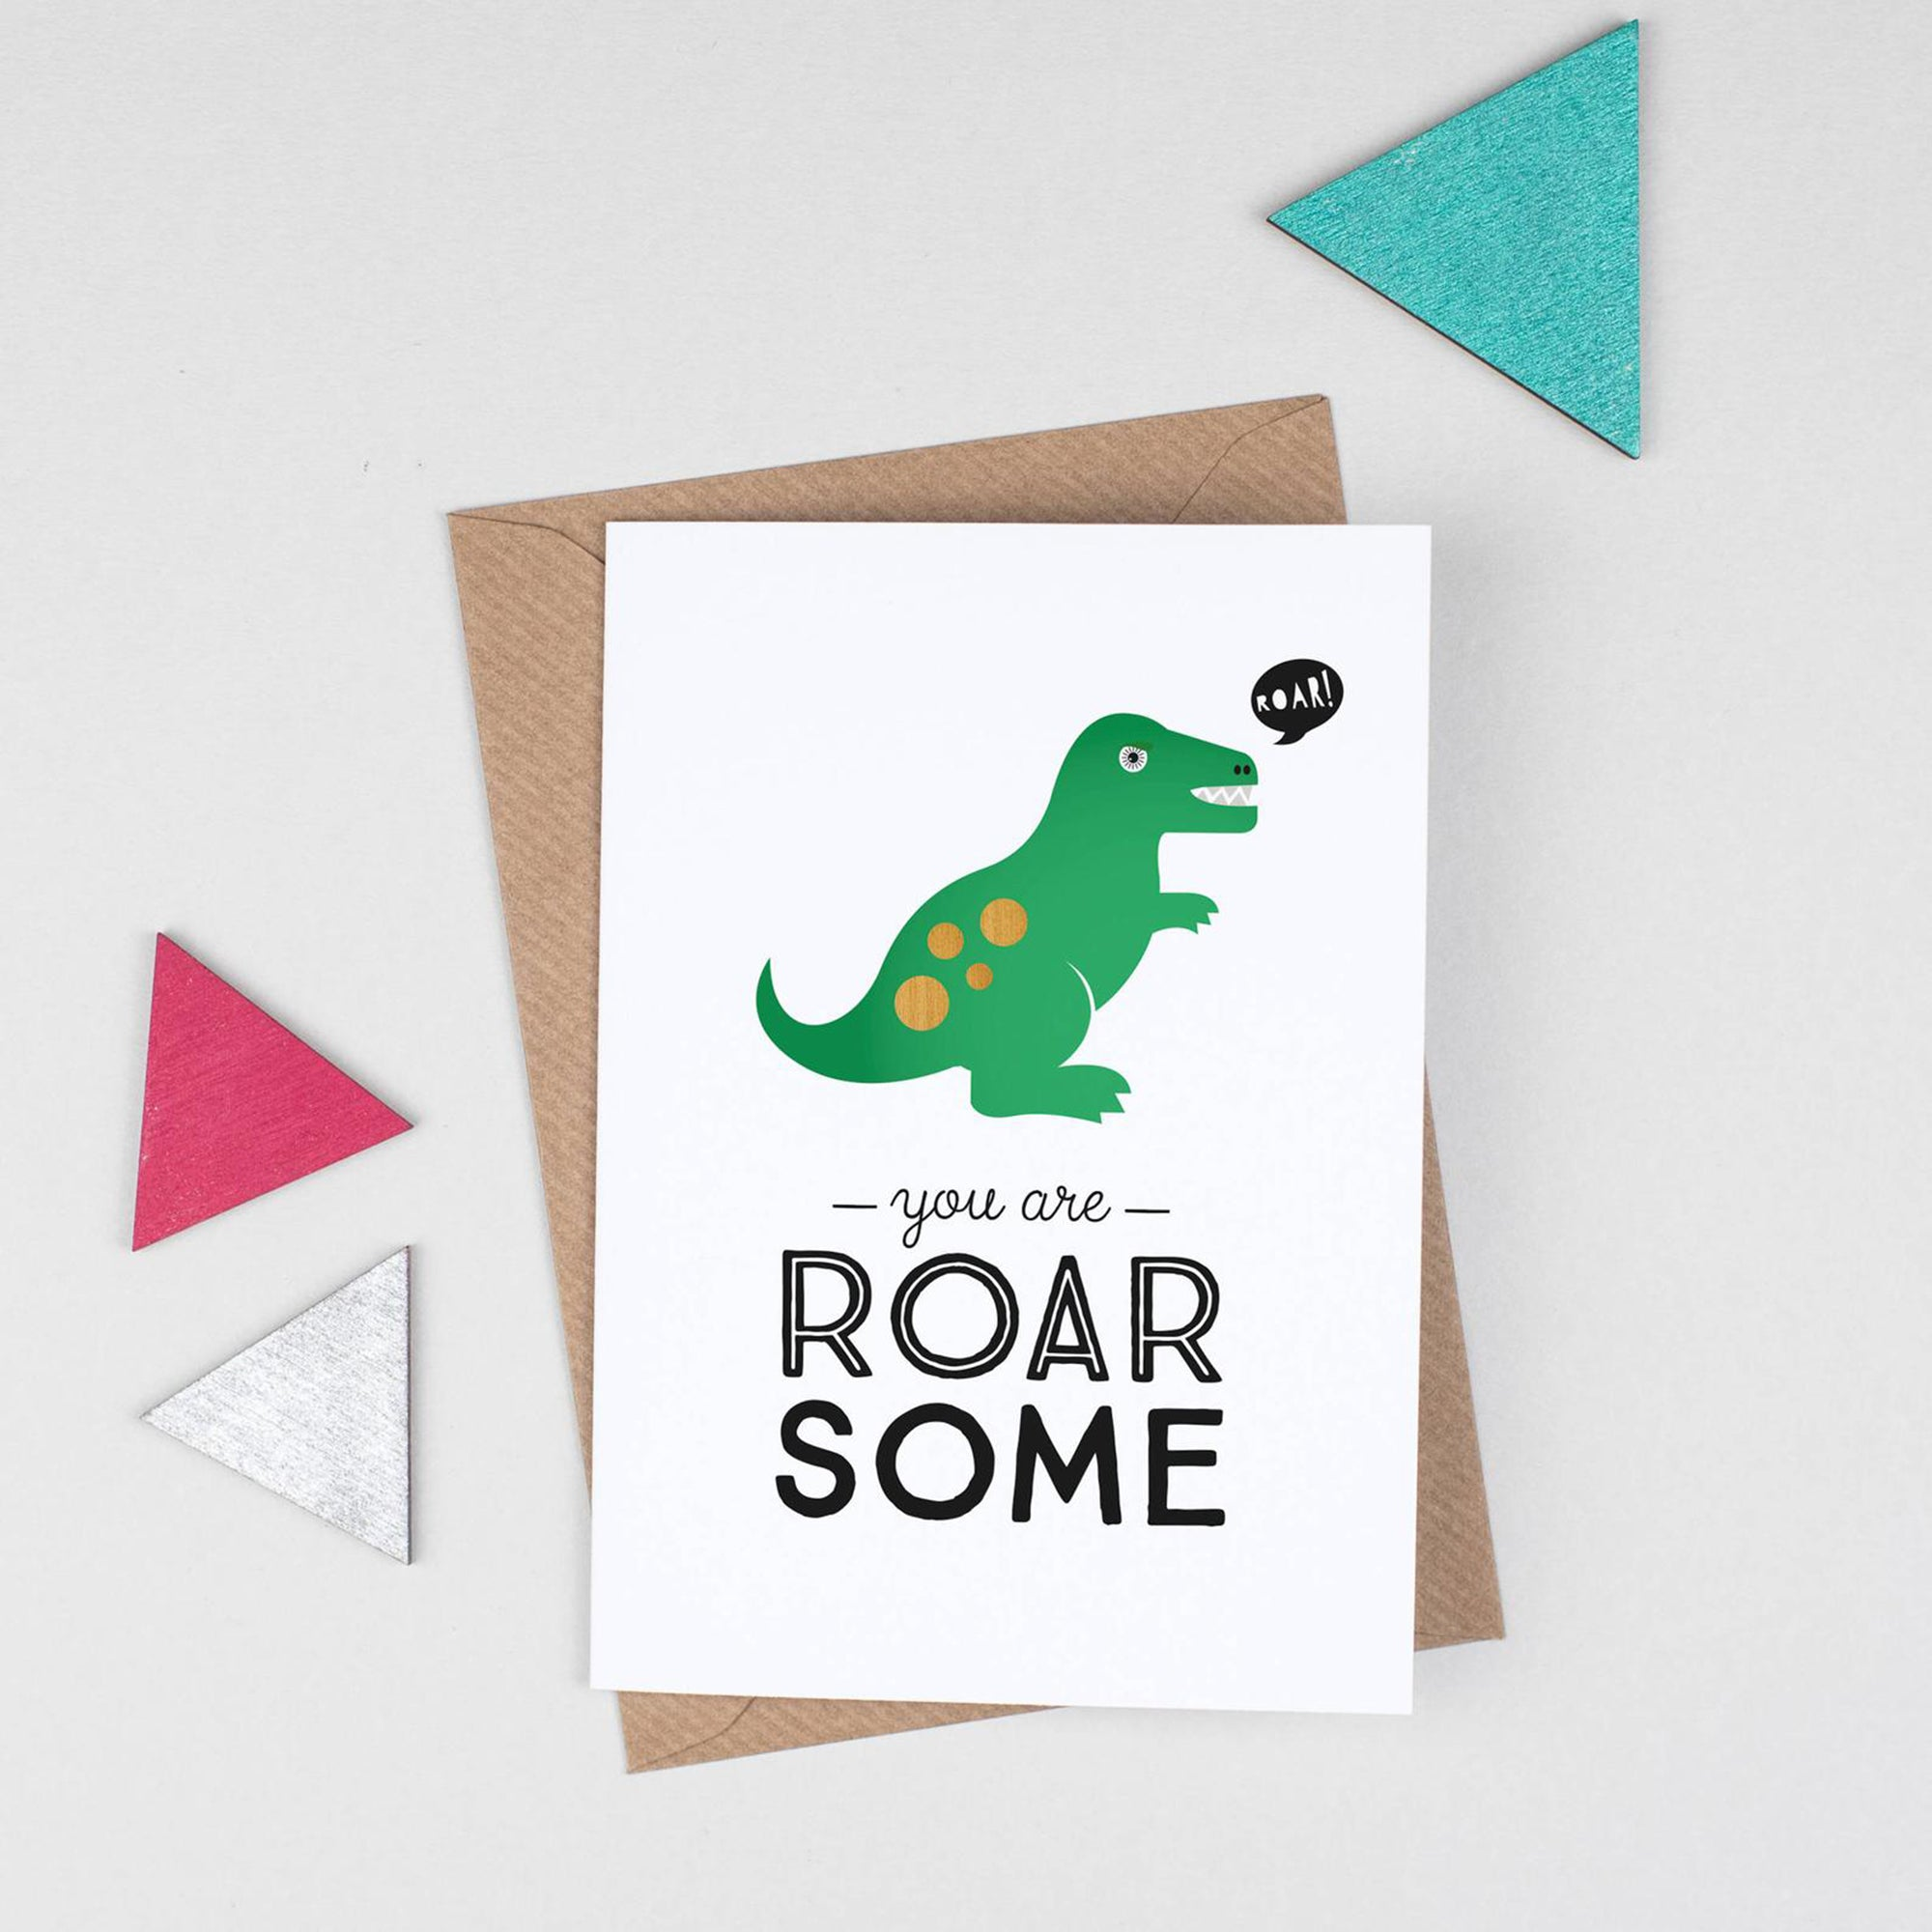 Roarsome dinosaur greetings card - Inspired